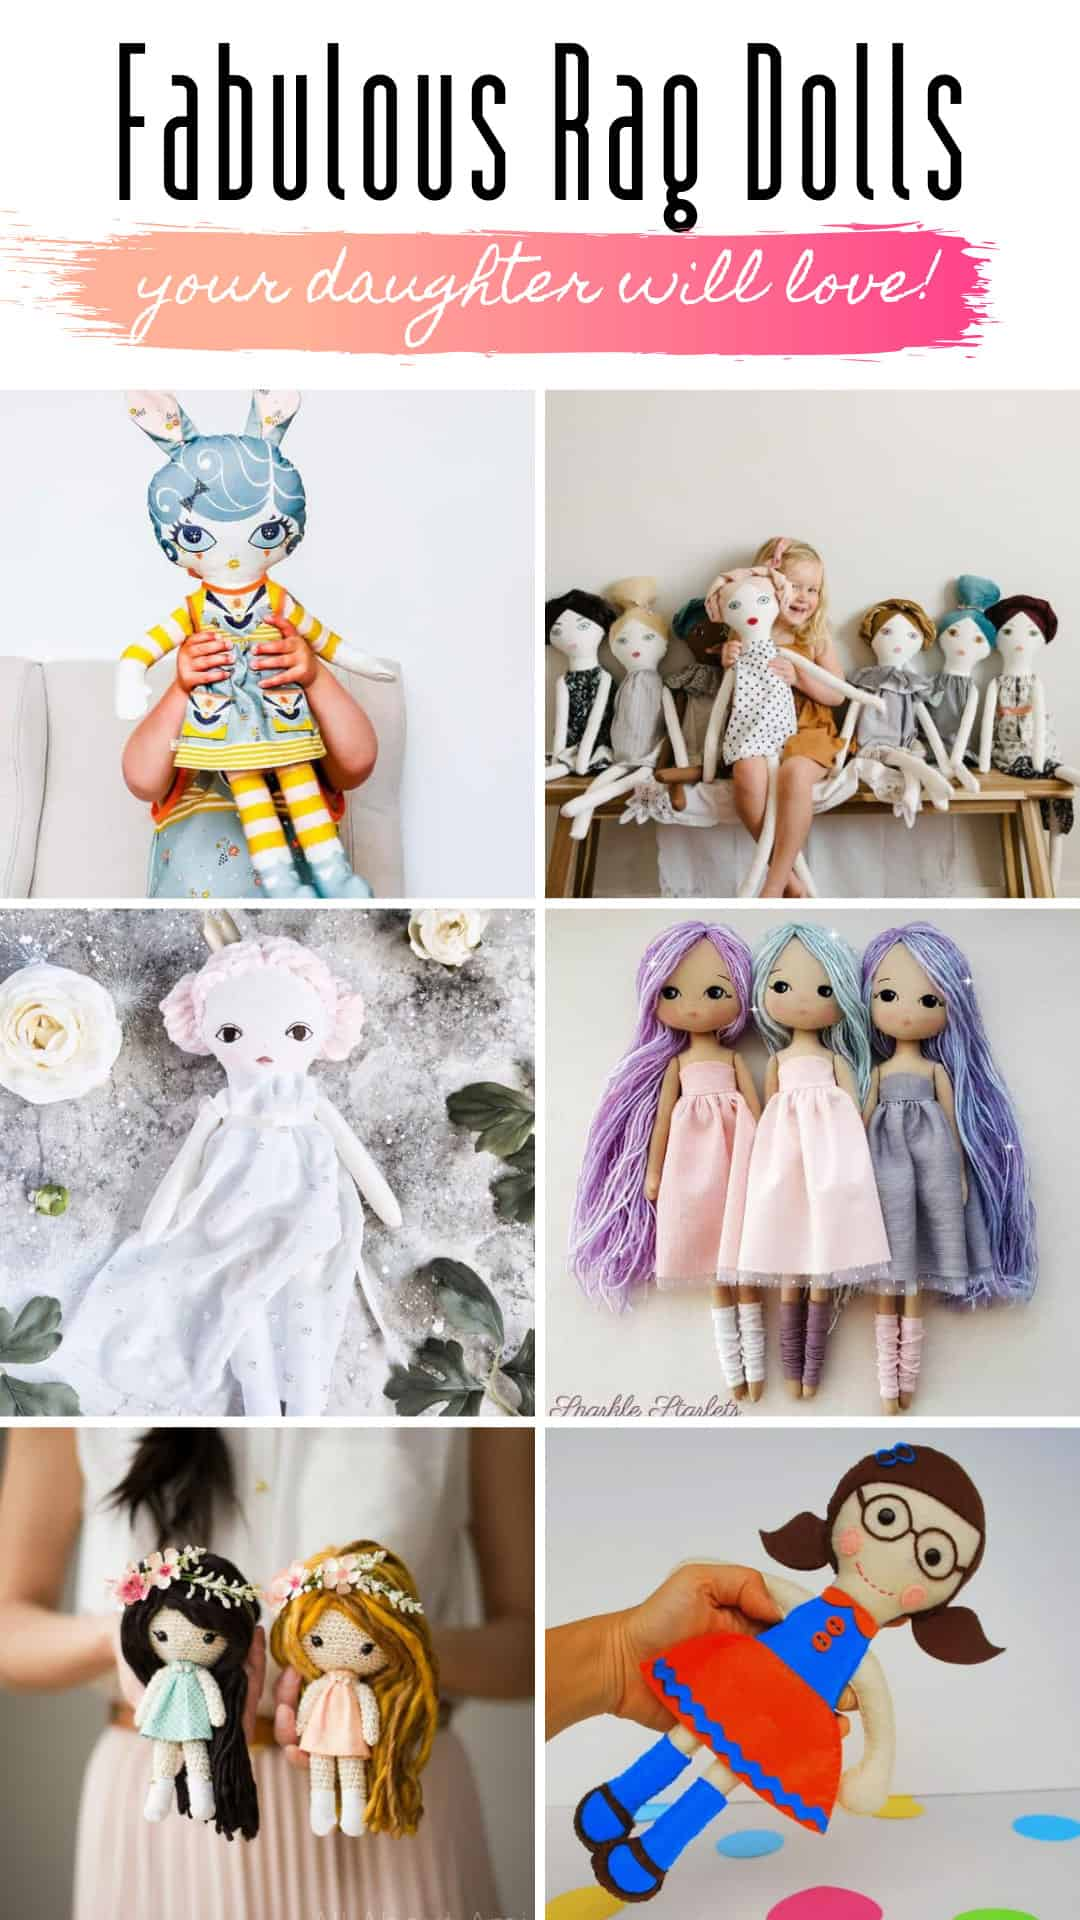 These rag doll patterns are just gorgeous and perfect gift ideas for the little girl on your make for list!